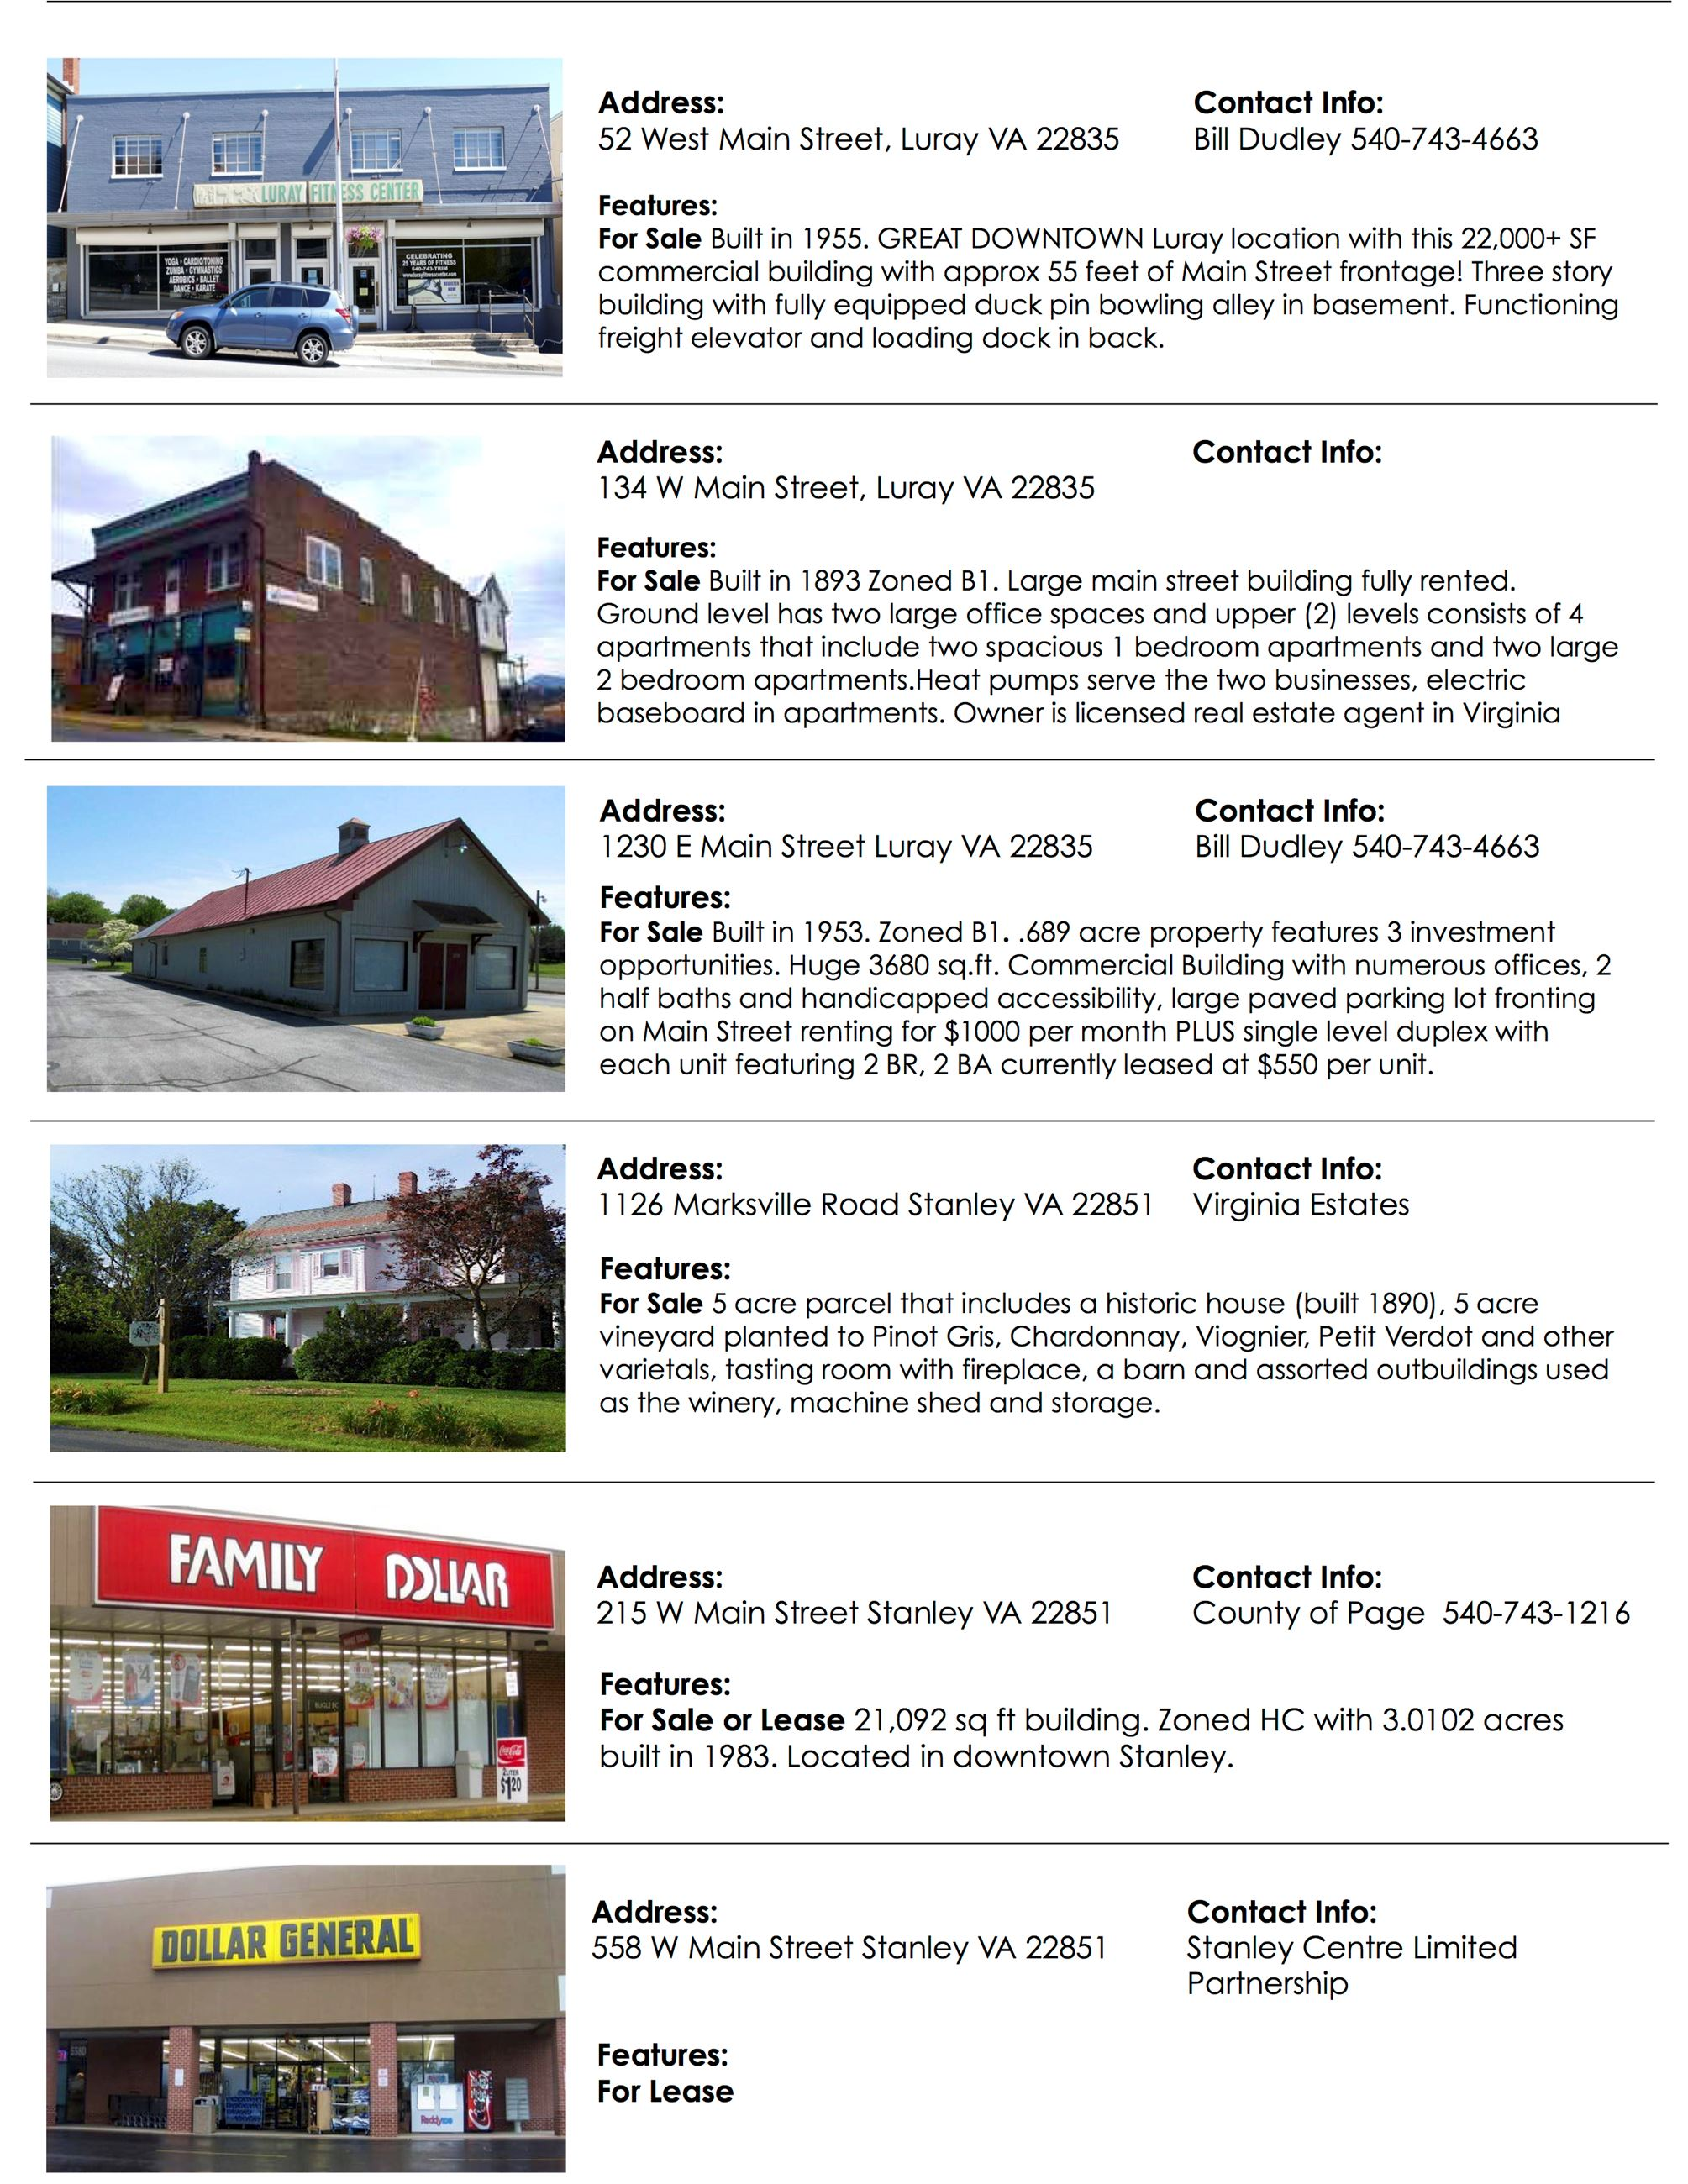 Property Listing 2017 page 3